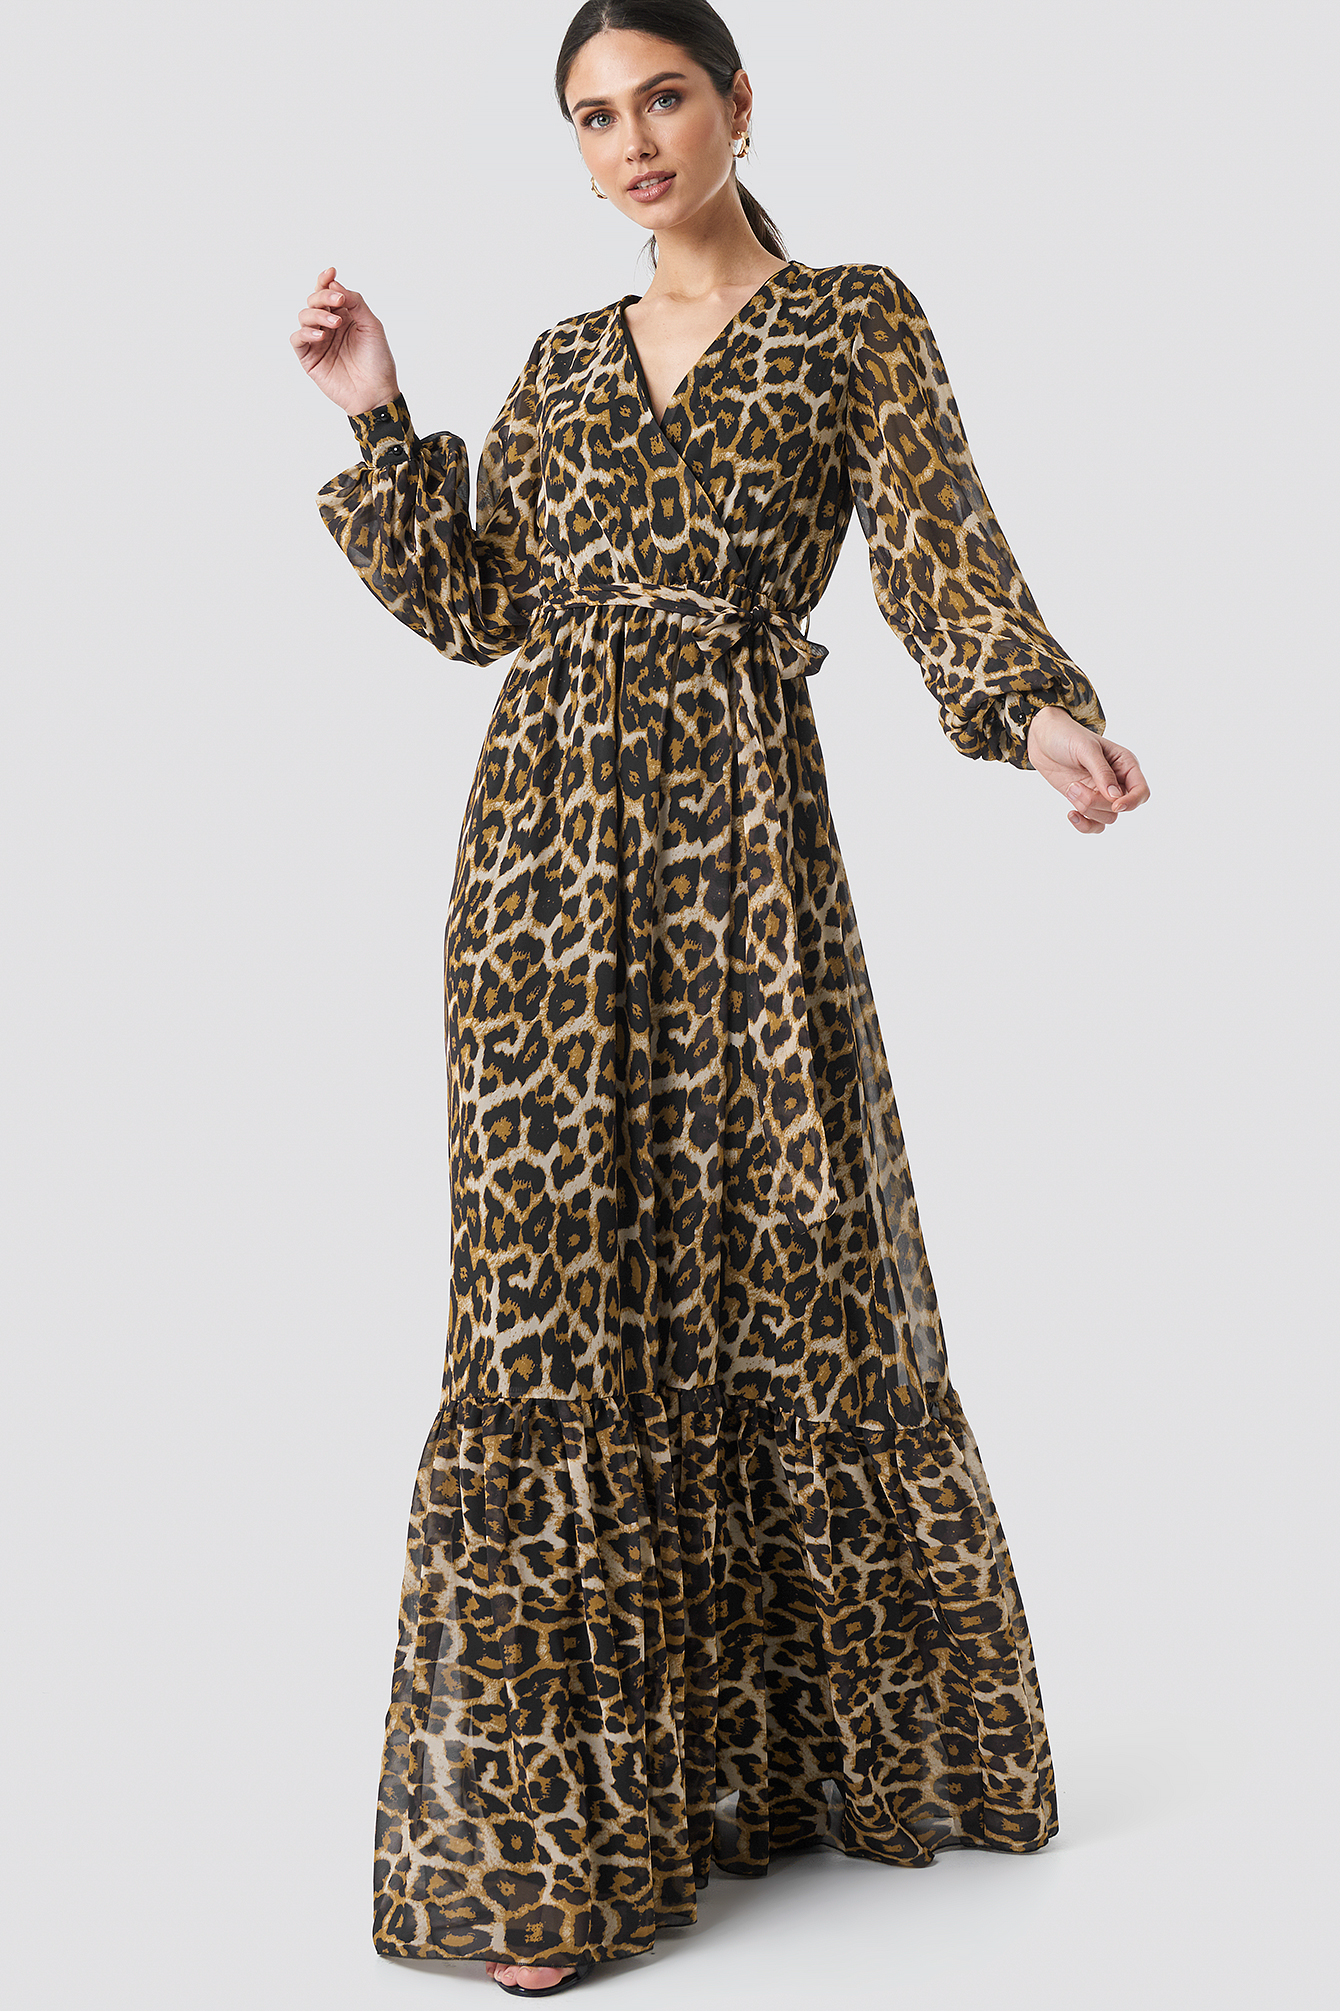 393115f8c8a8 Leopard Patterned Evening Dress Brown